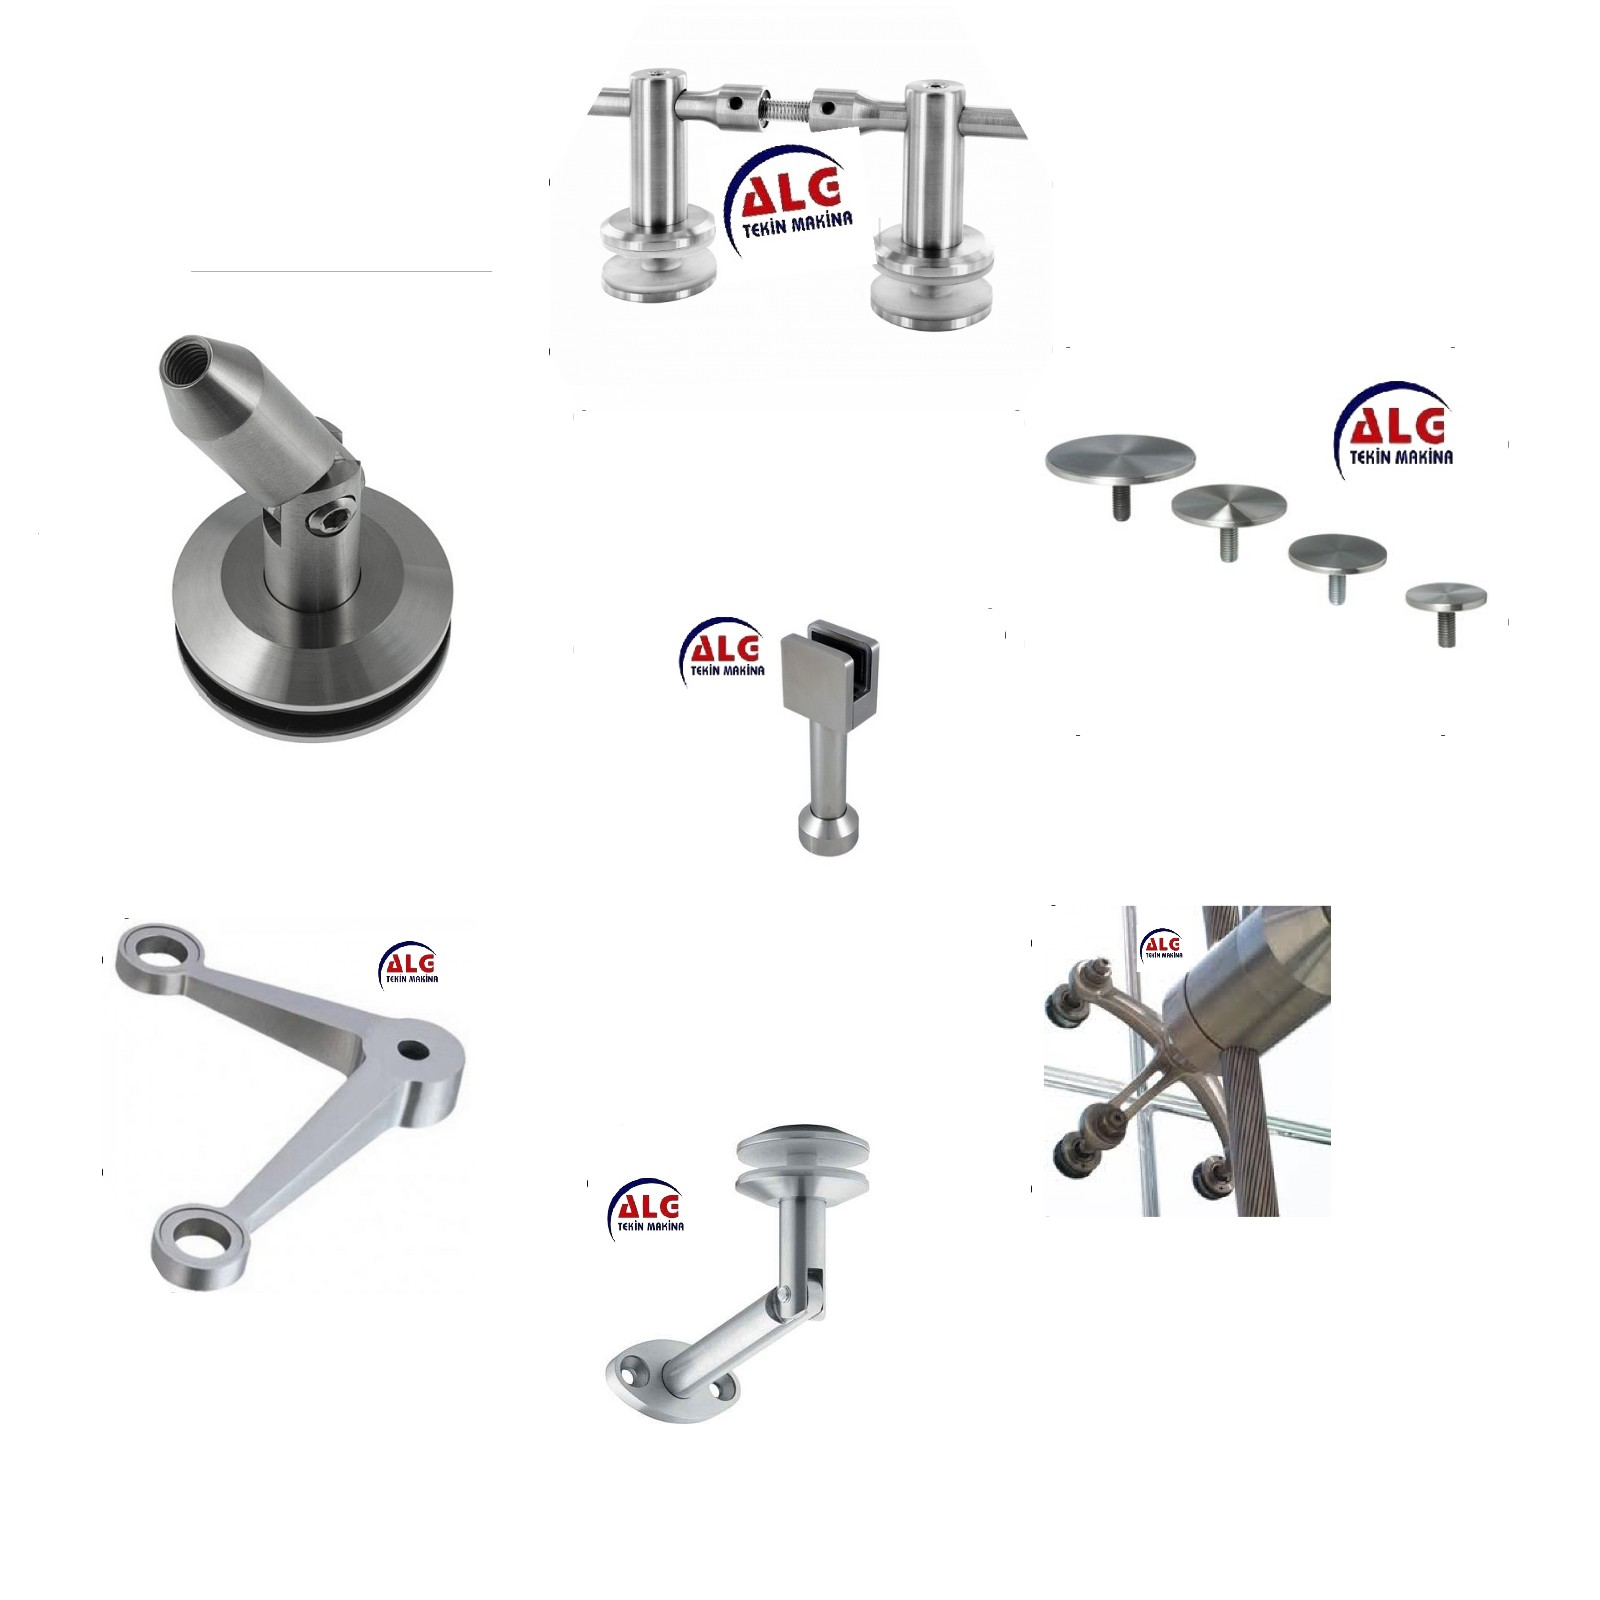 Produced Spider Stainless Glass Holders CNC-LATHE-CNC-MACHINING-CENTER